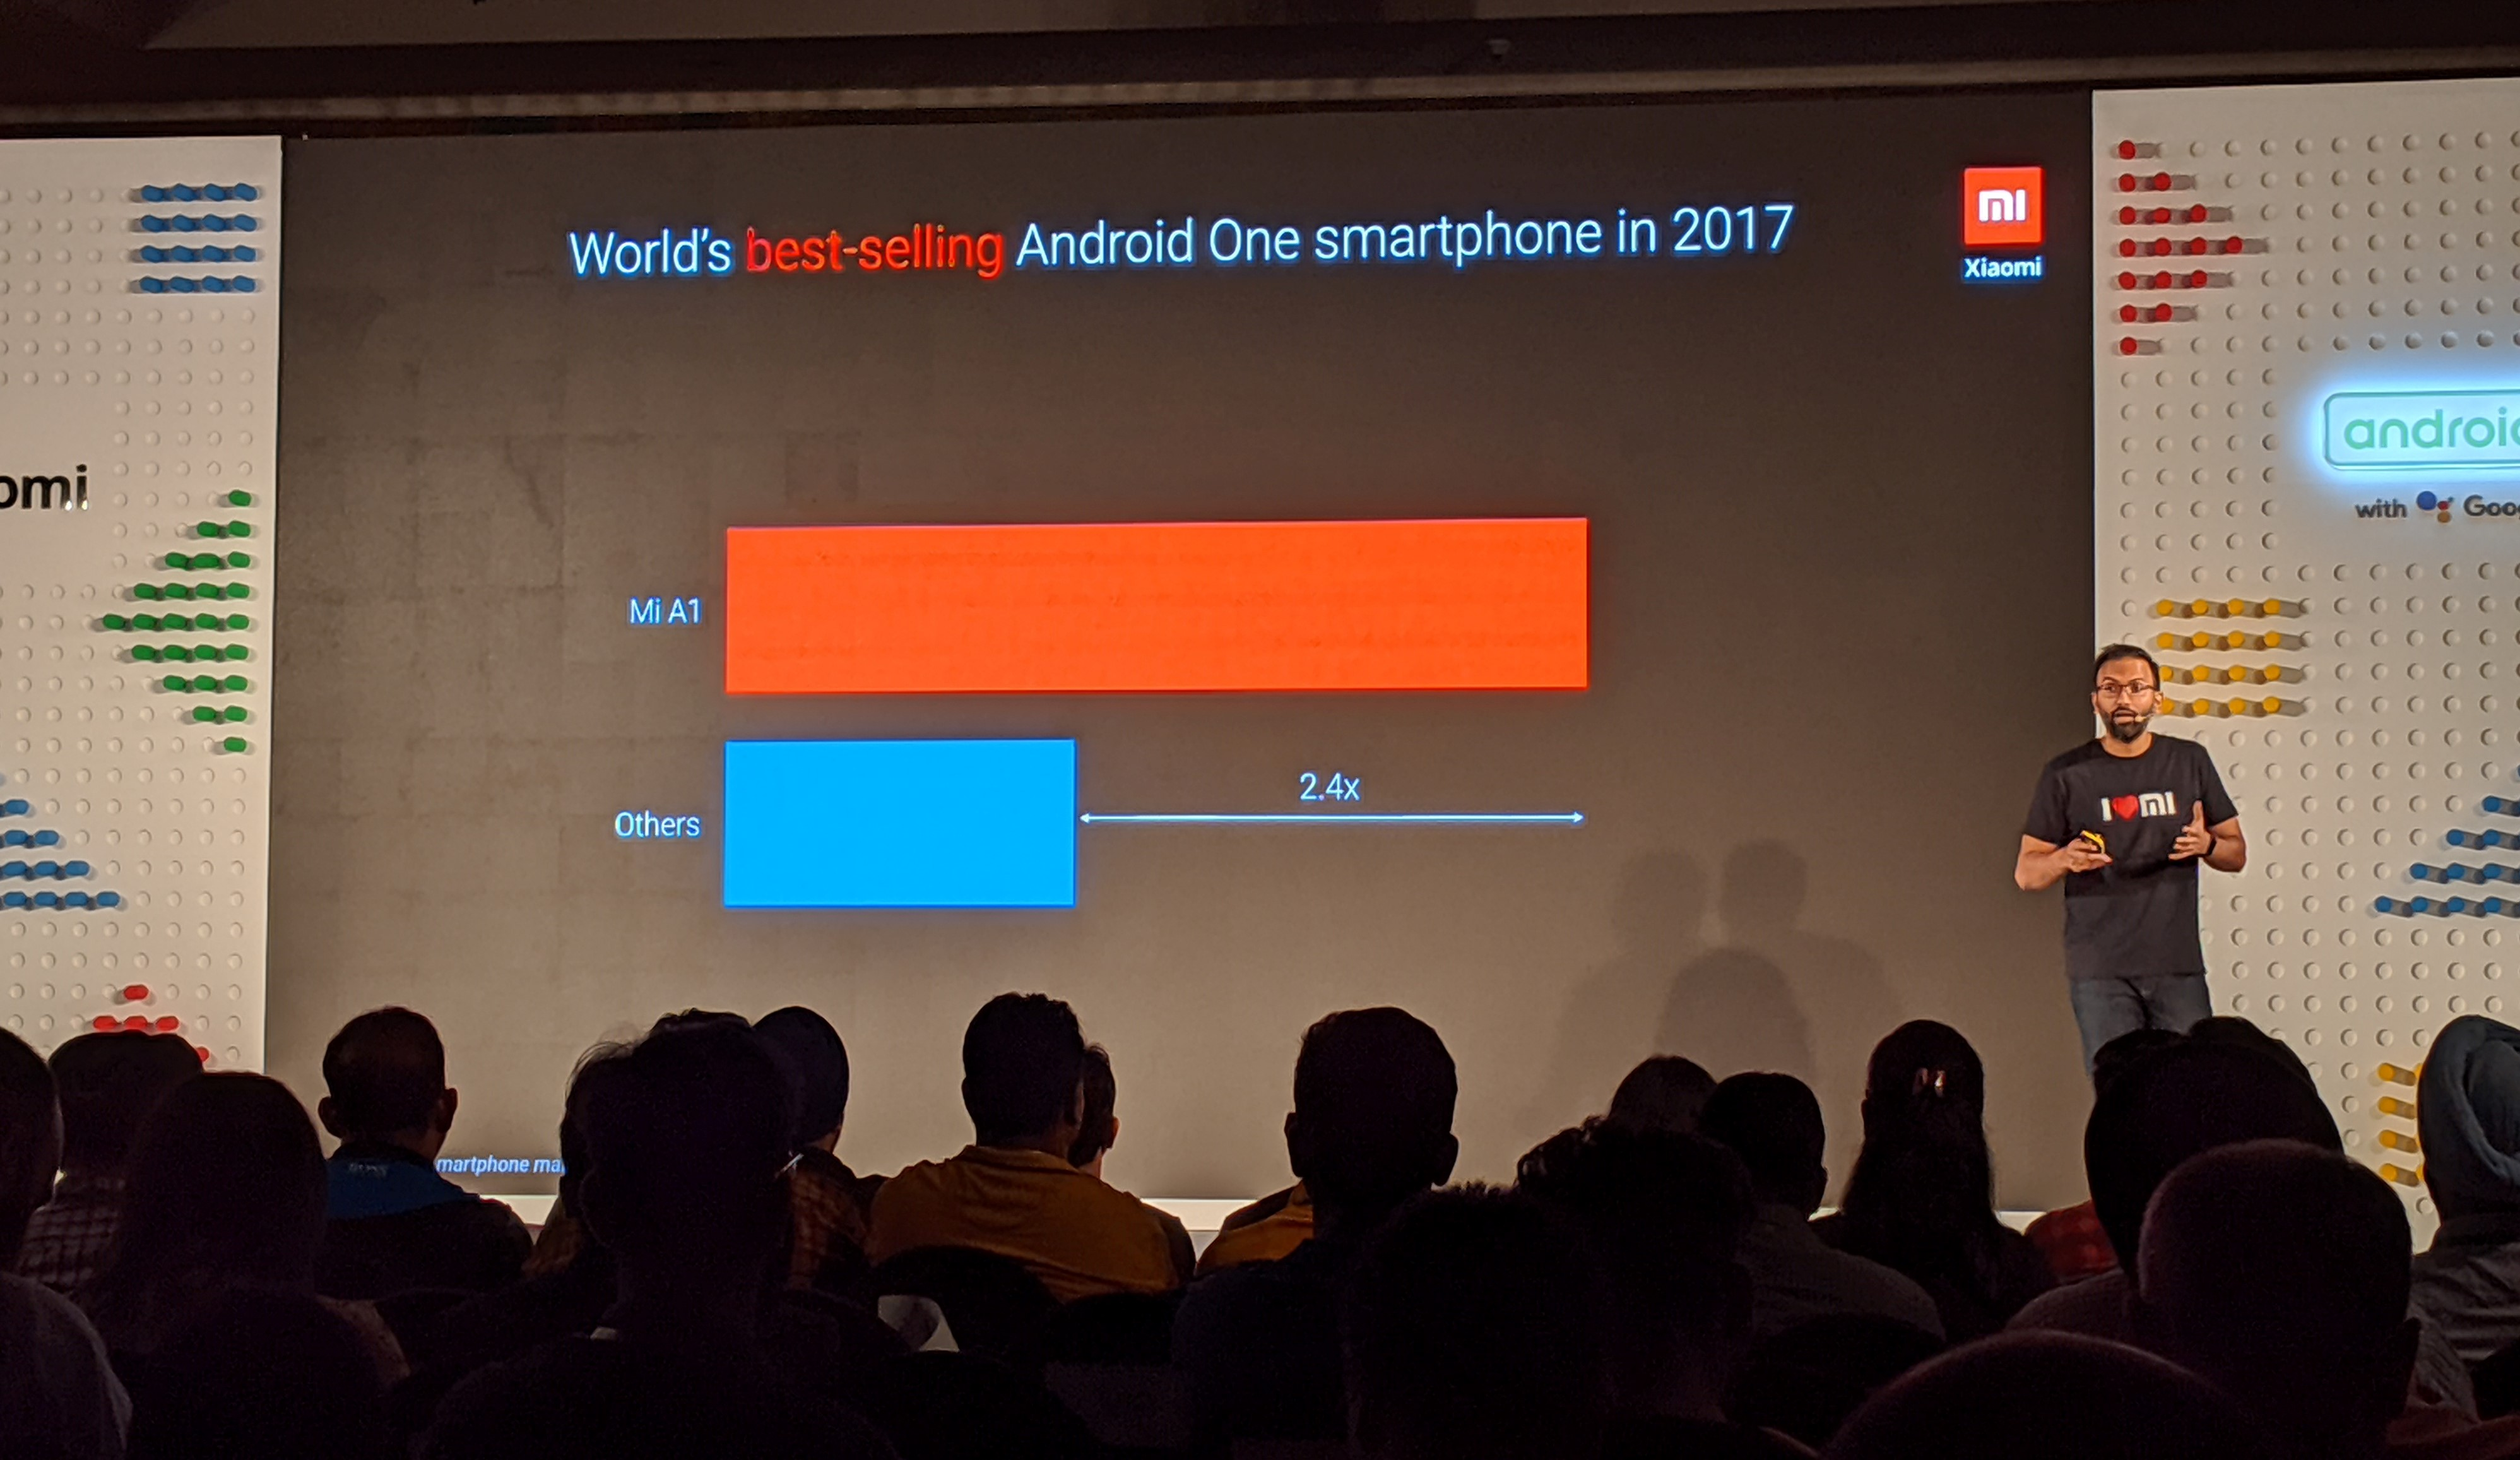 xiaomi androidone